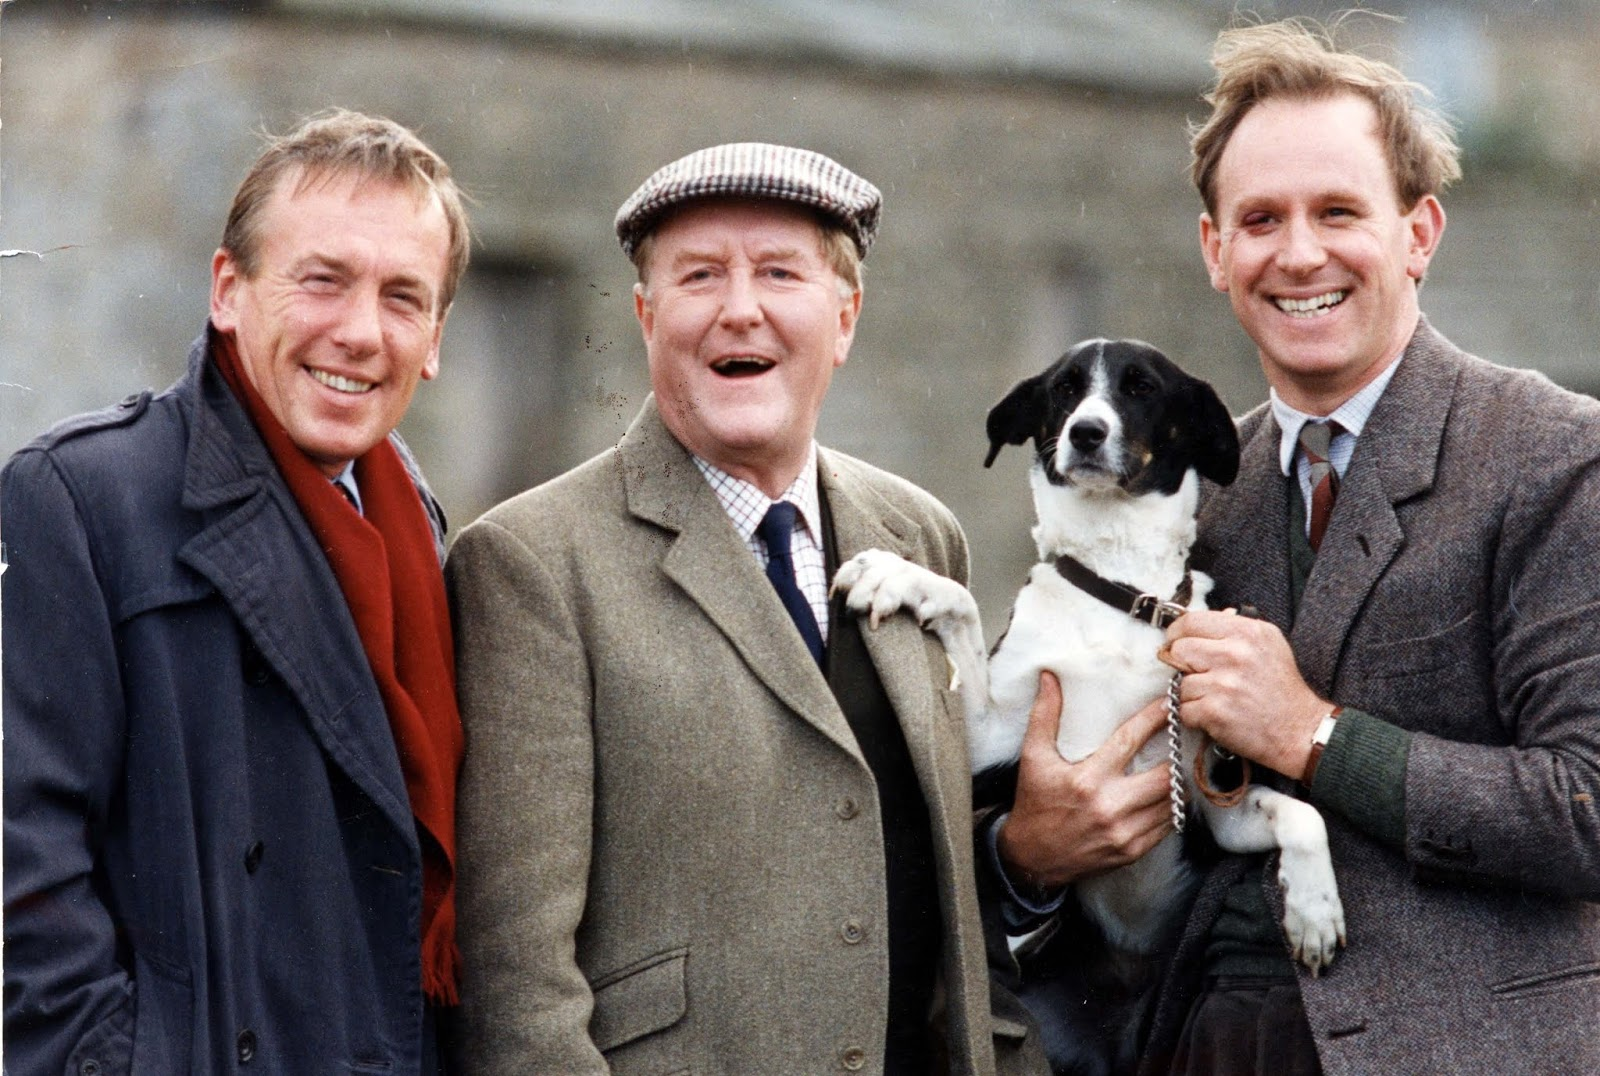 The cast of the original BBC series All Creatures Great and Small about a vet's practice in Yorkshire